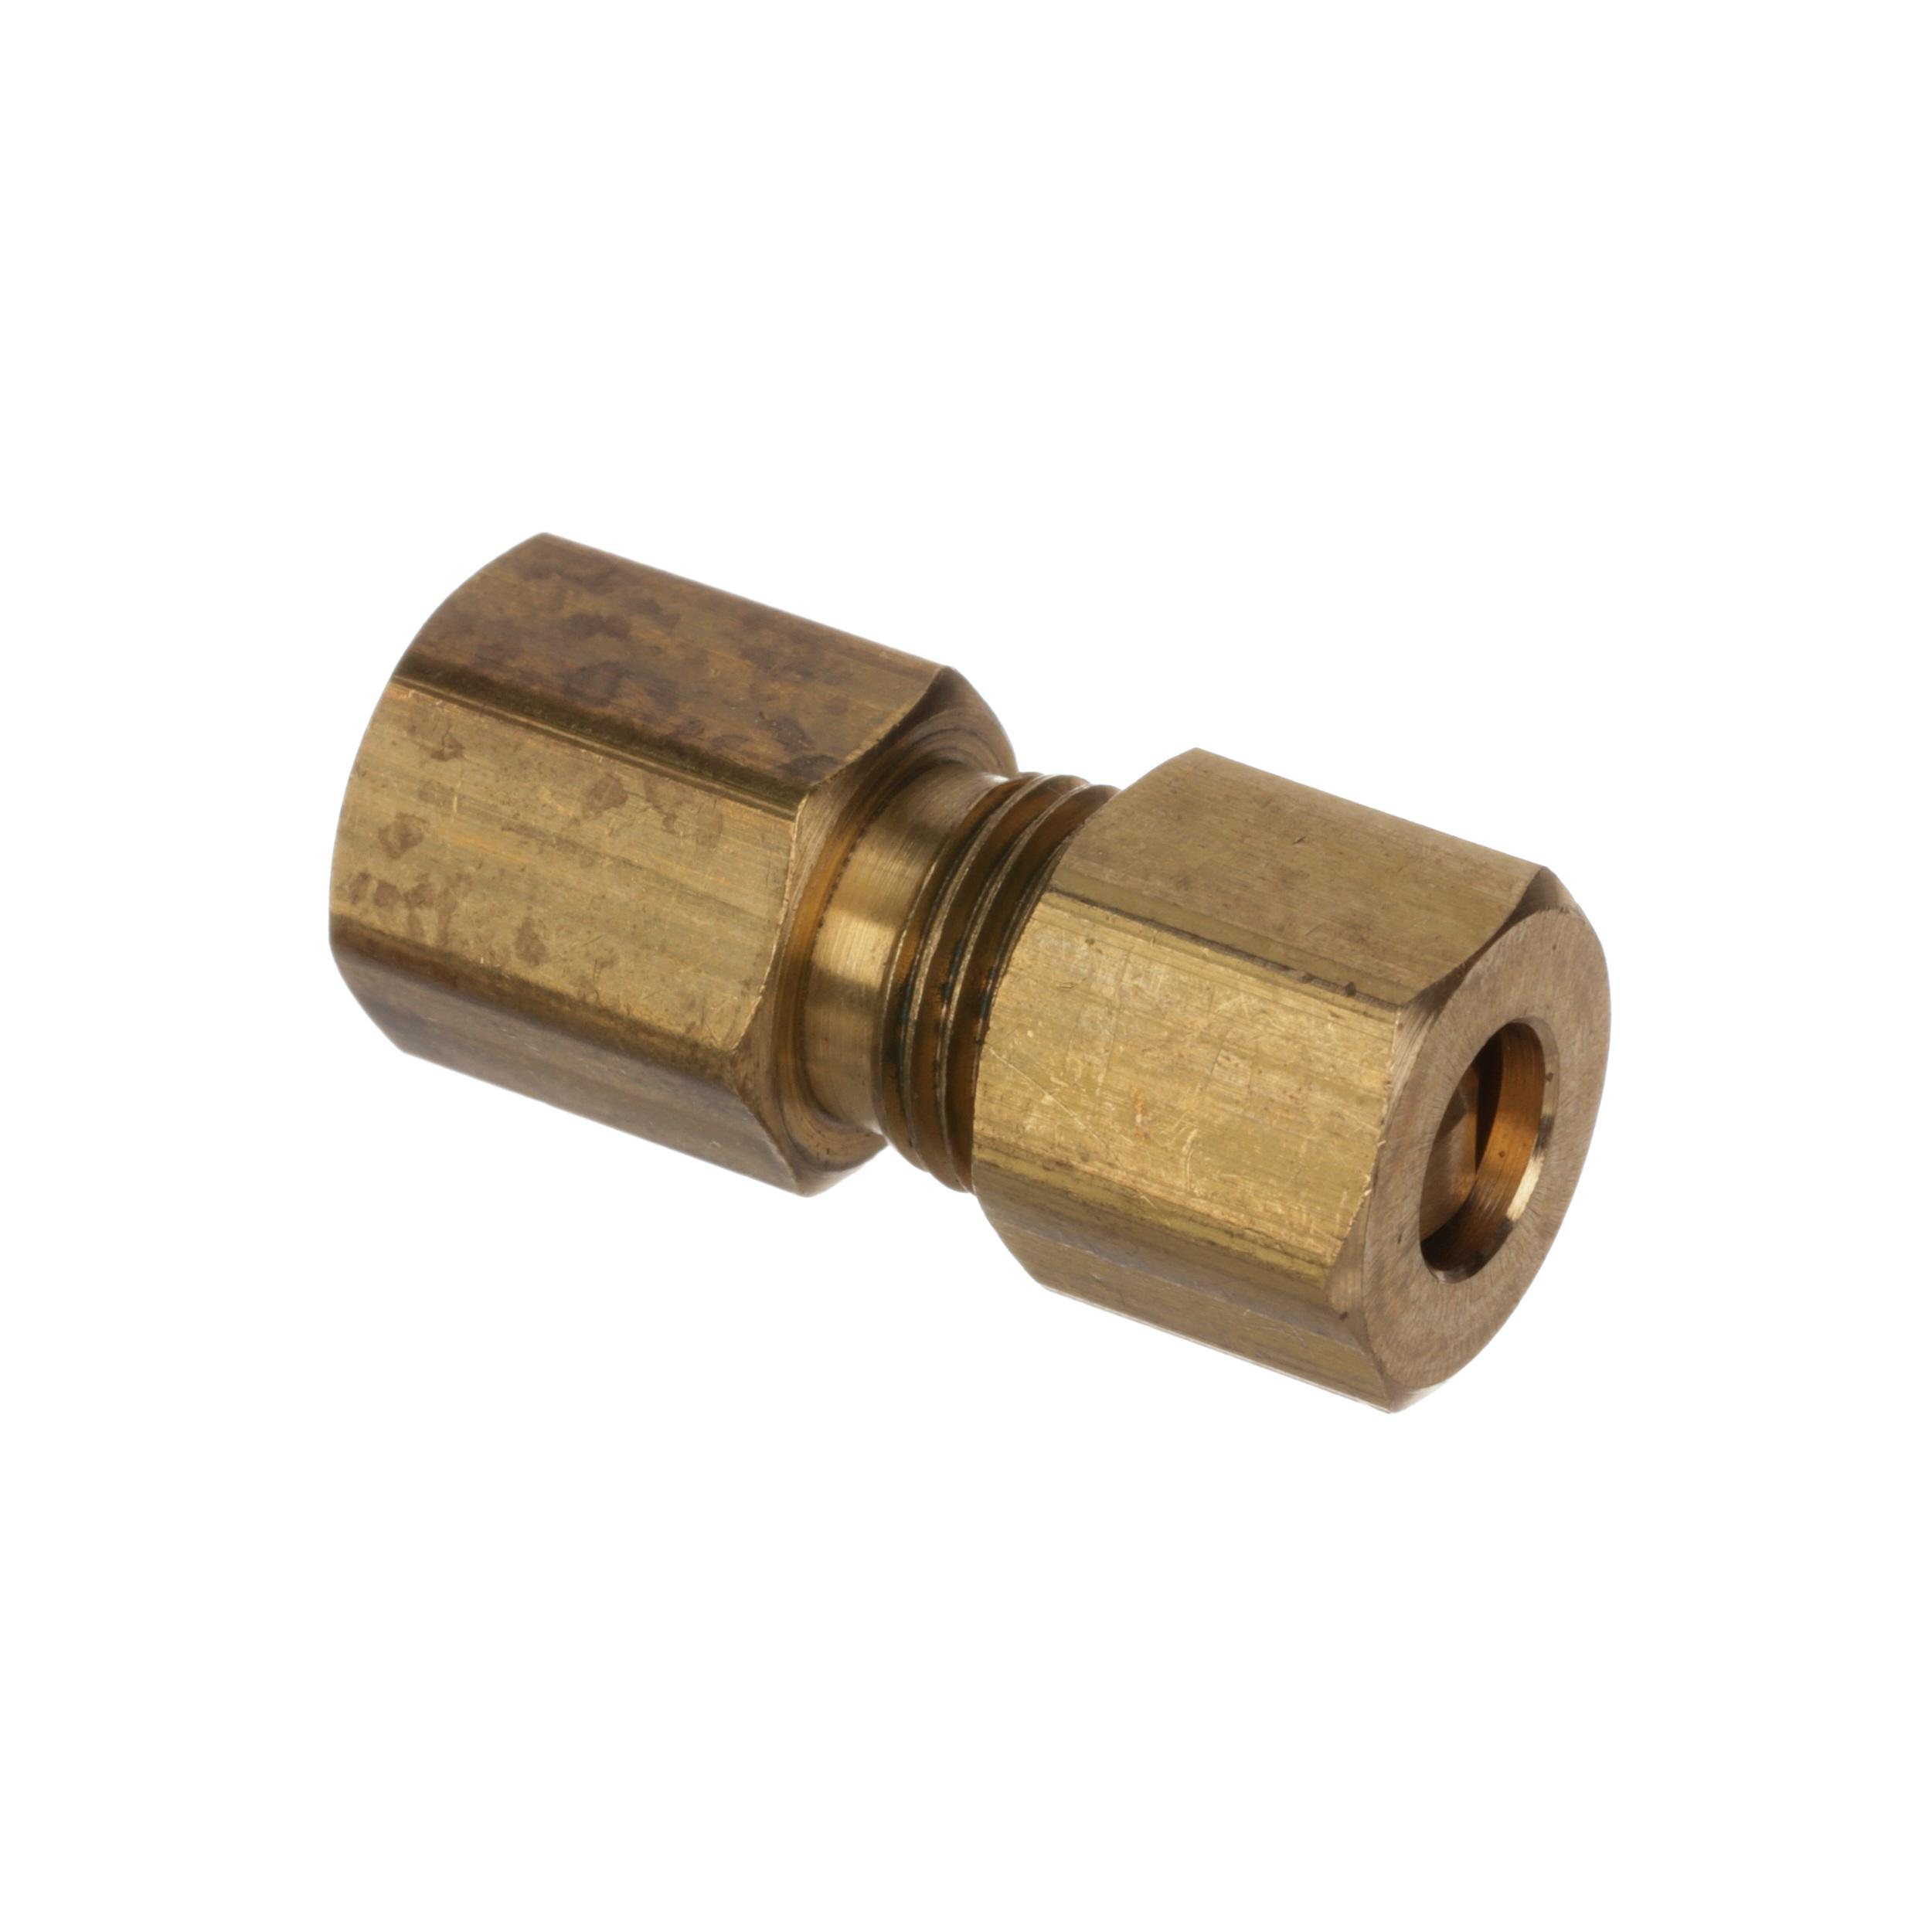 MARSHALL AIR SYSTEMS BRASS COUPLING